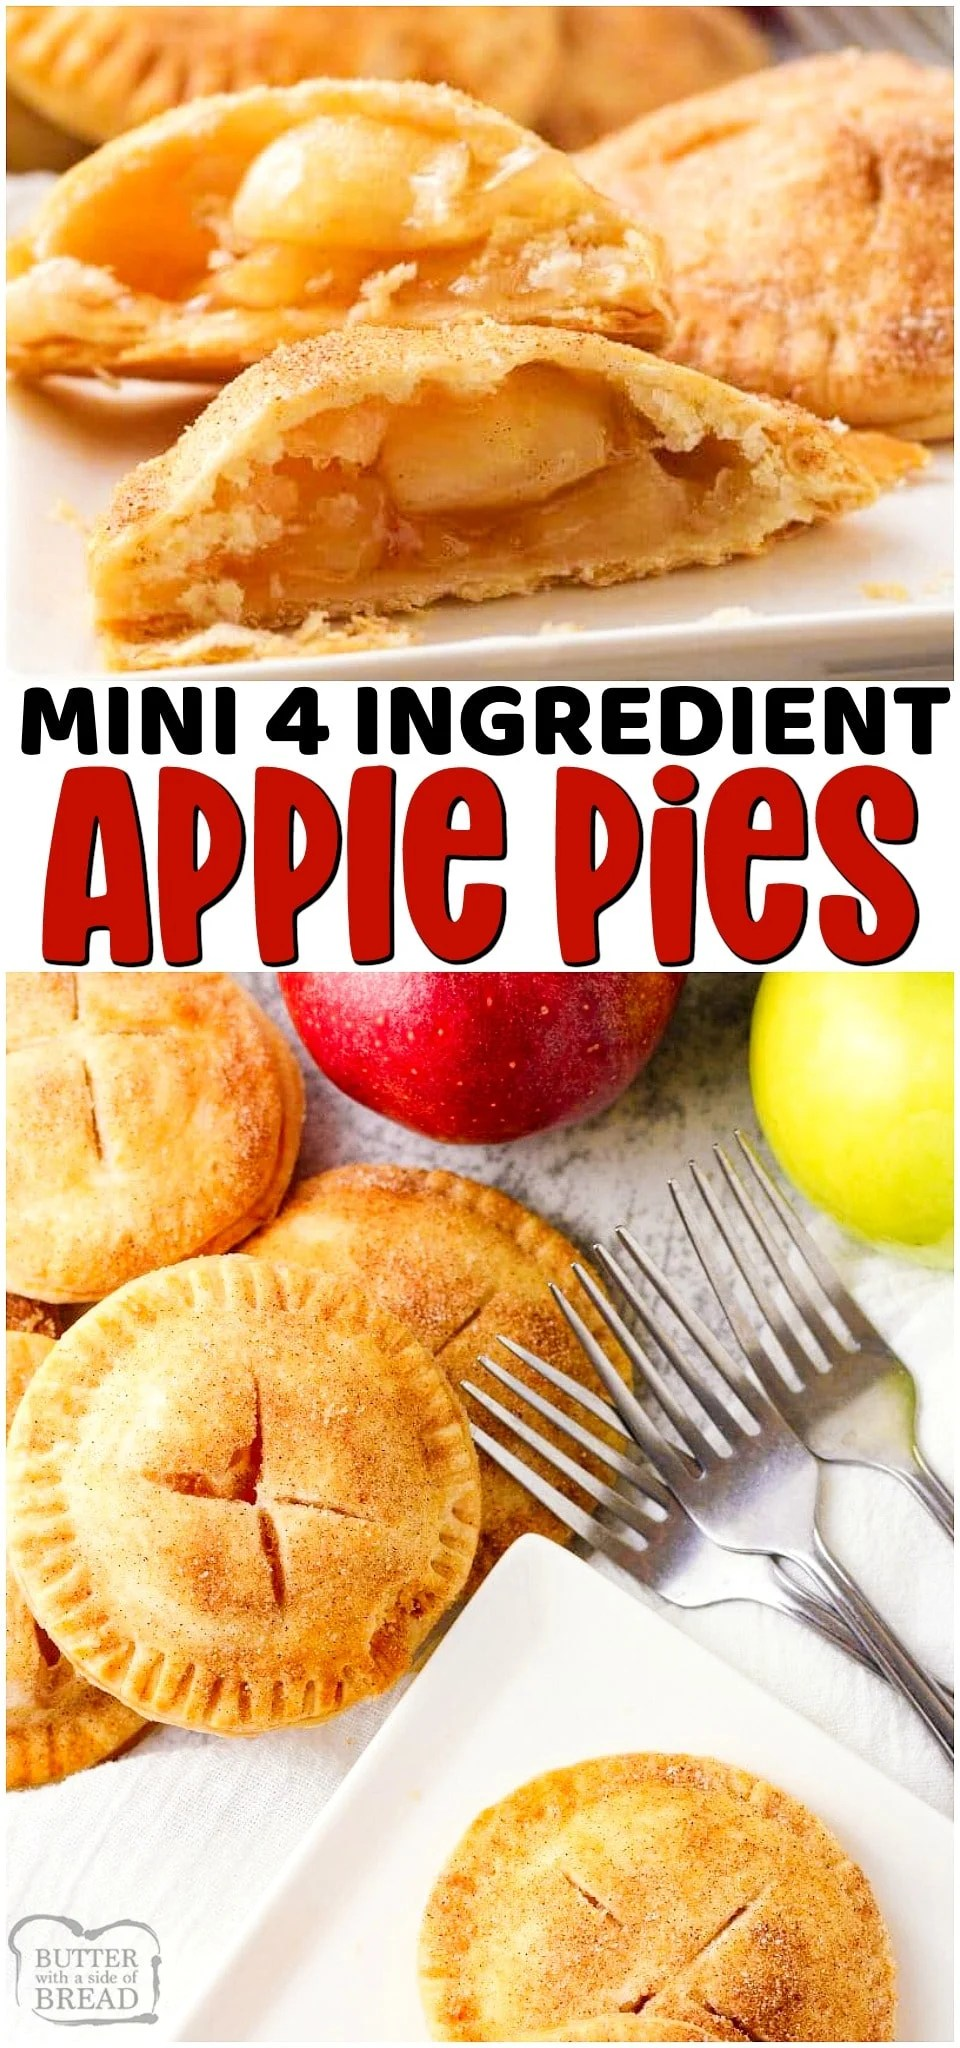 Mini Apple Pies are a simple 4 ingredient dessert made with flaky pie crust & apple pie filling. Lovely tastes of apple pie only so much easier to make! #apples #pie #applepie #easypie #minipie #pierecipe #dessert #baking from BUTTER WITH A SIDE OF BREAD